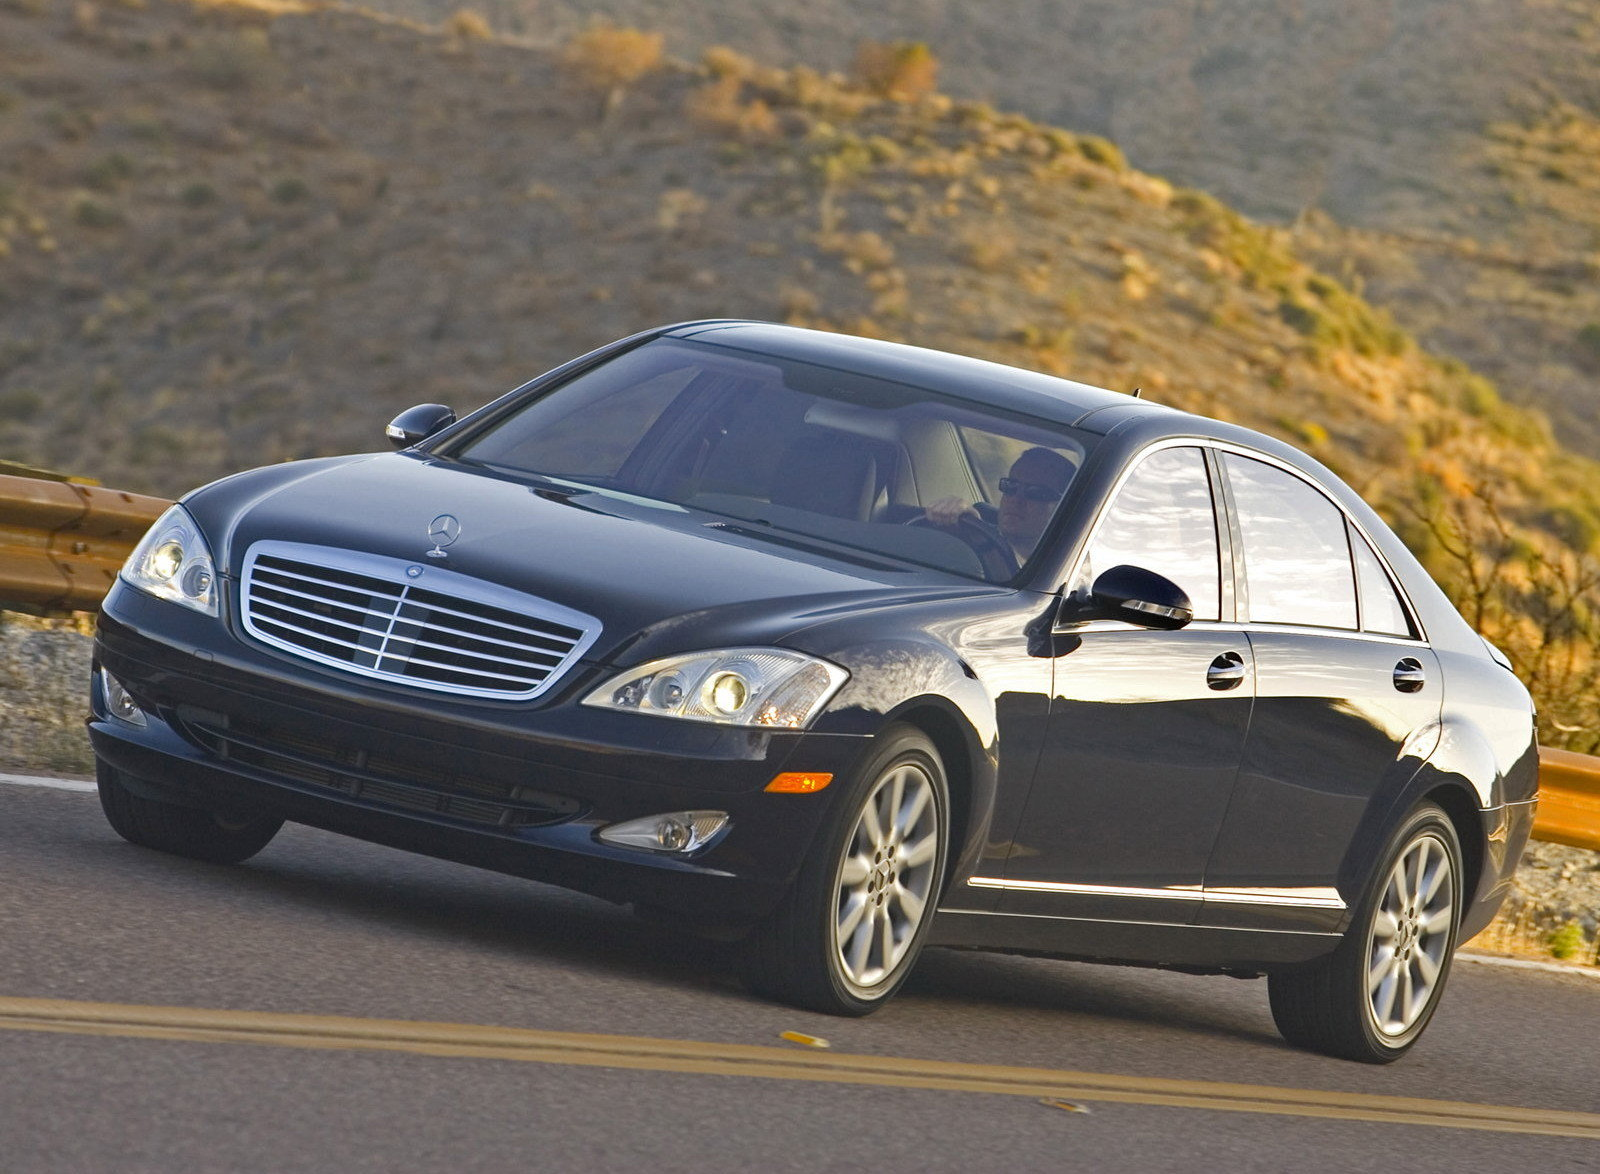 2009 mercedes e class picture 144284 car review top speed. Black Bedroom Furniture Sets. Home Design Ideas